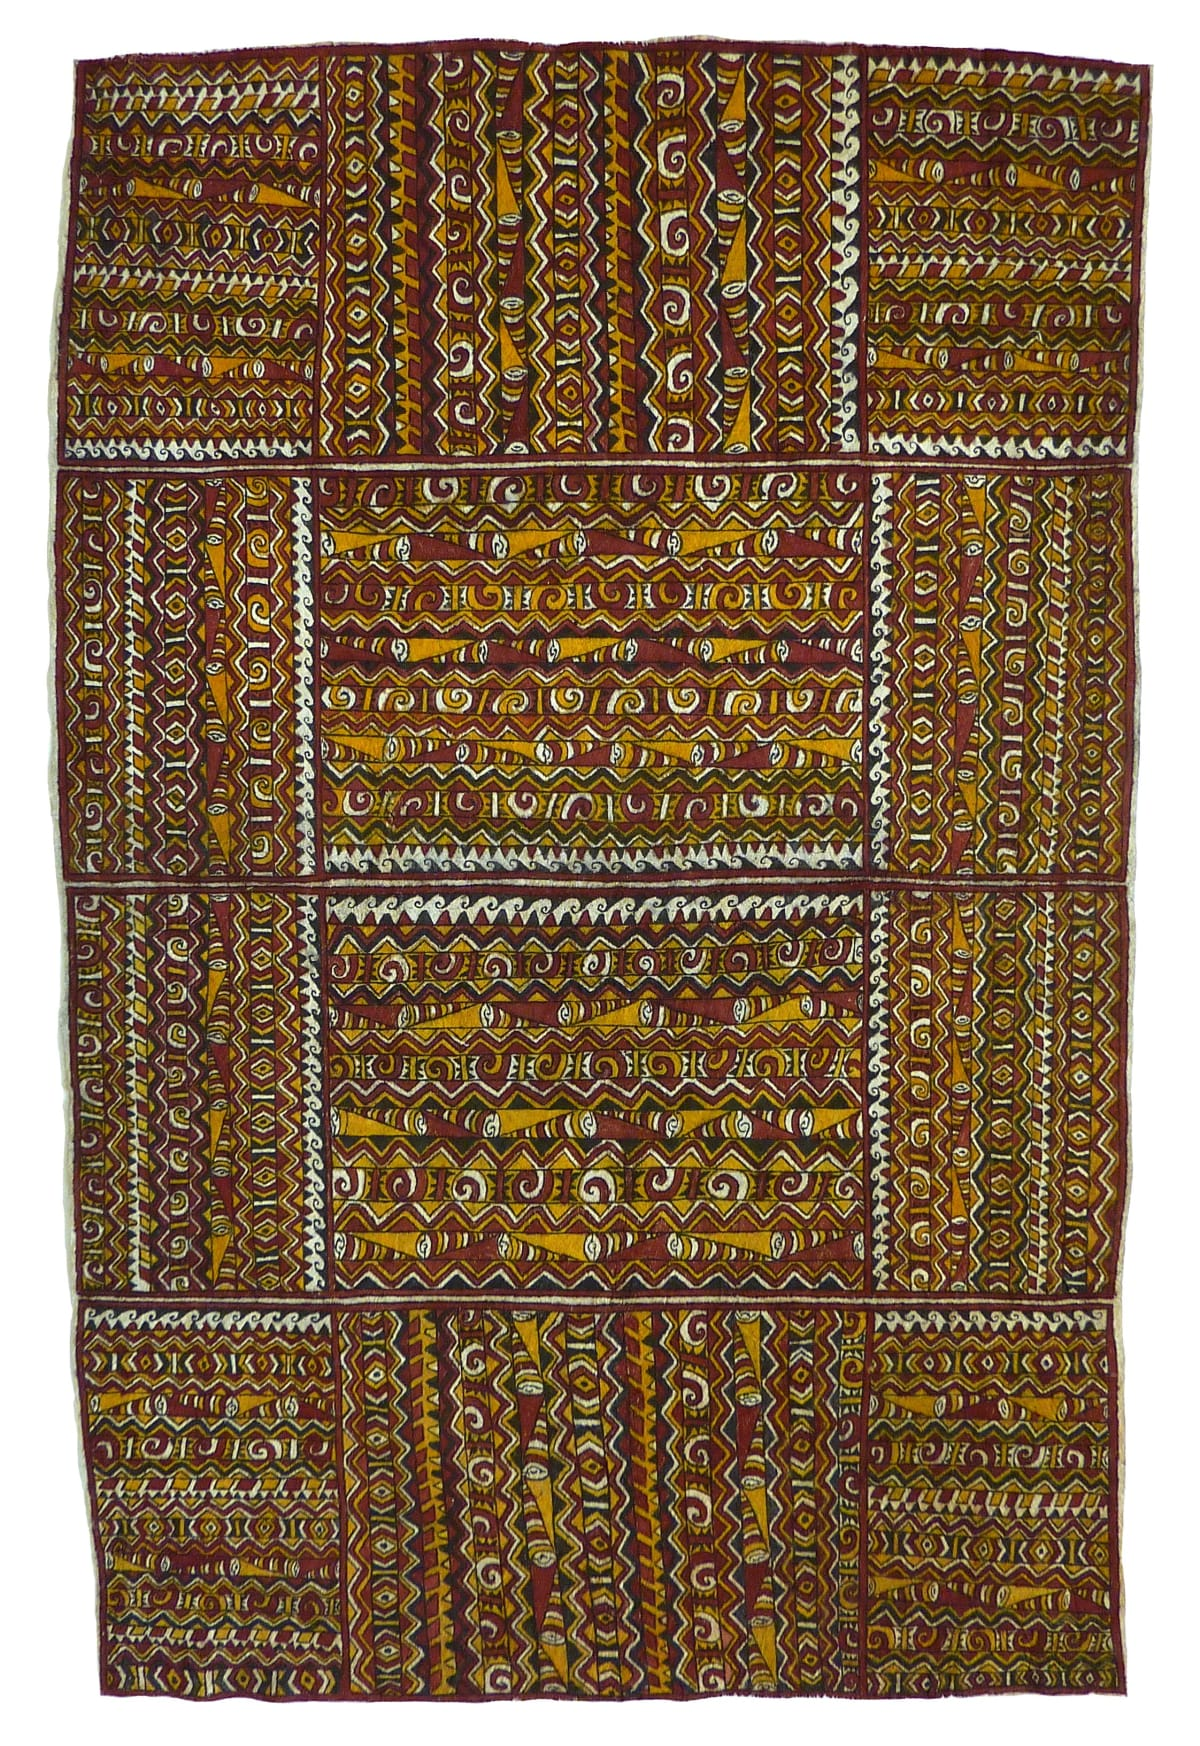 Lillias Bujava (Kausara) Mohoho'ijwe natural pigments on nioge (barkcloth) 137 x 89 cm